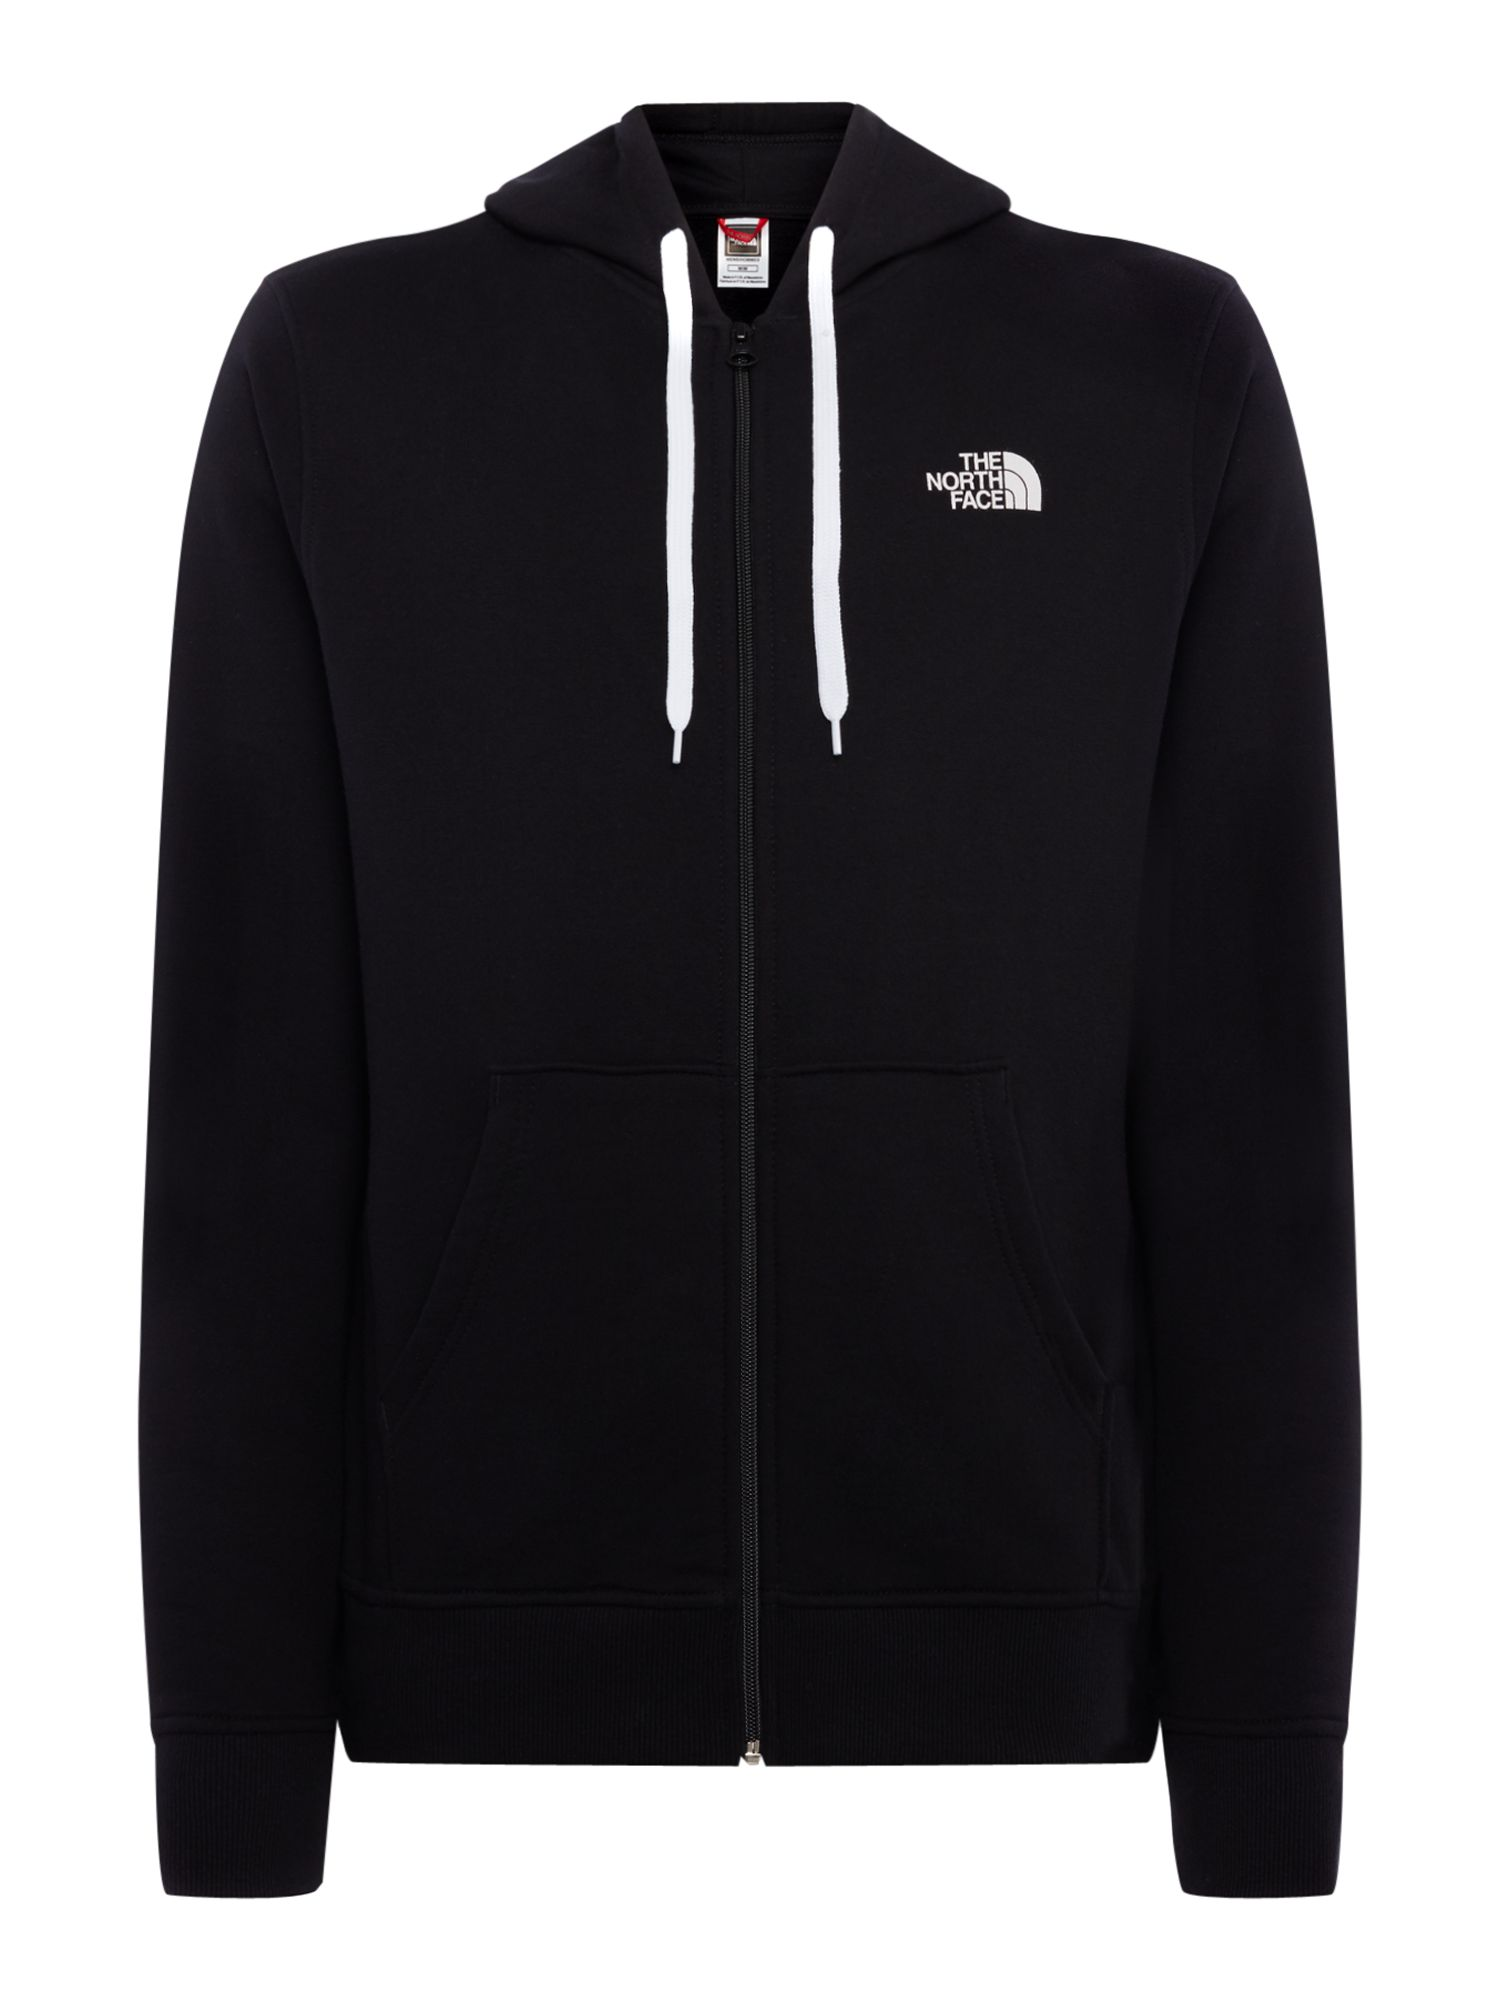 Men's The North Face Open Gate Full Zip Hoodie, Black